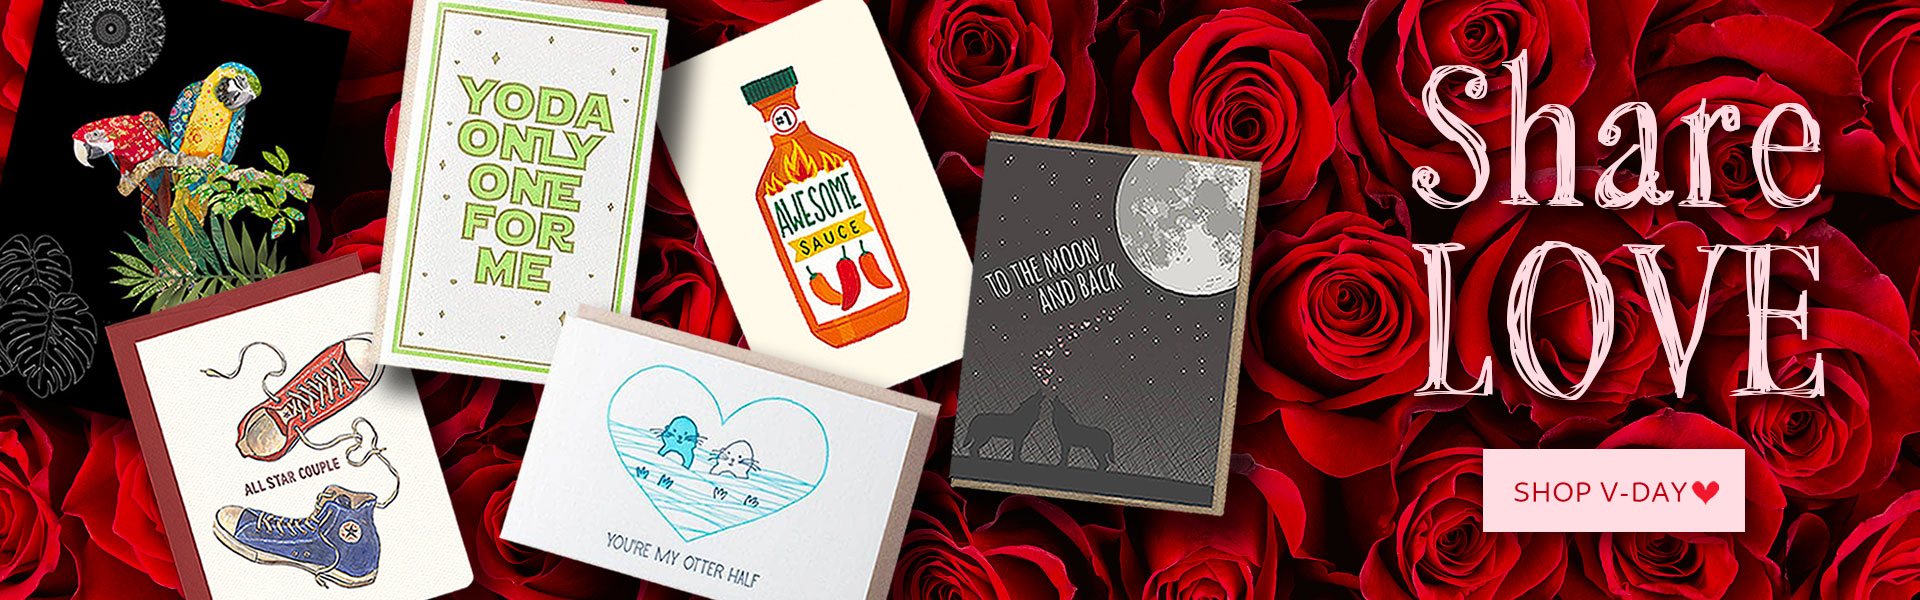 Show your love with Valentine's Day Gifts Cards and Gift Idea, Free Same Day Delivery In Toronto GTA - ATTO Gift